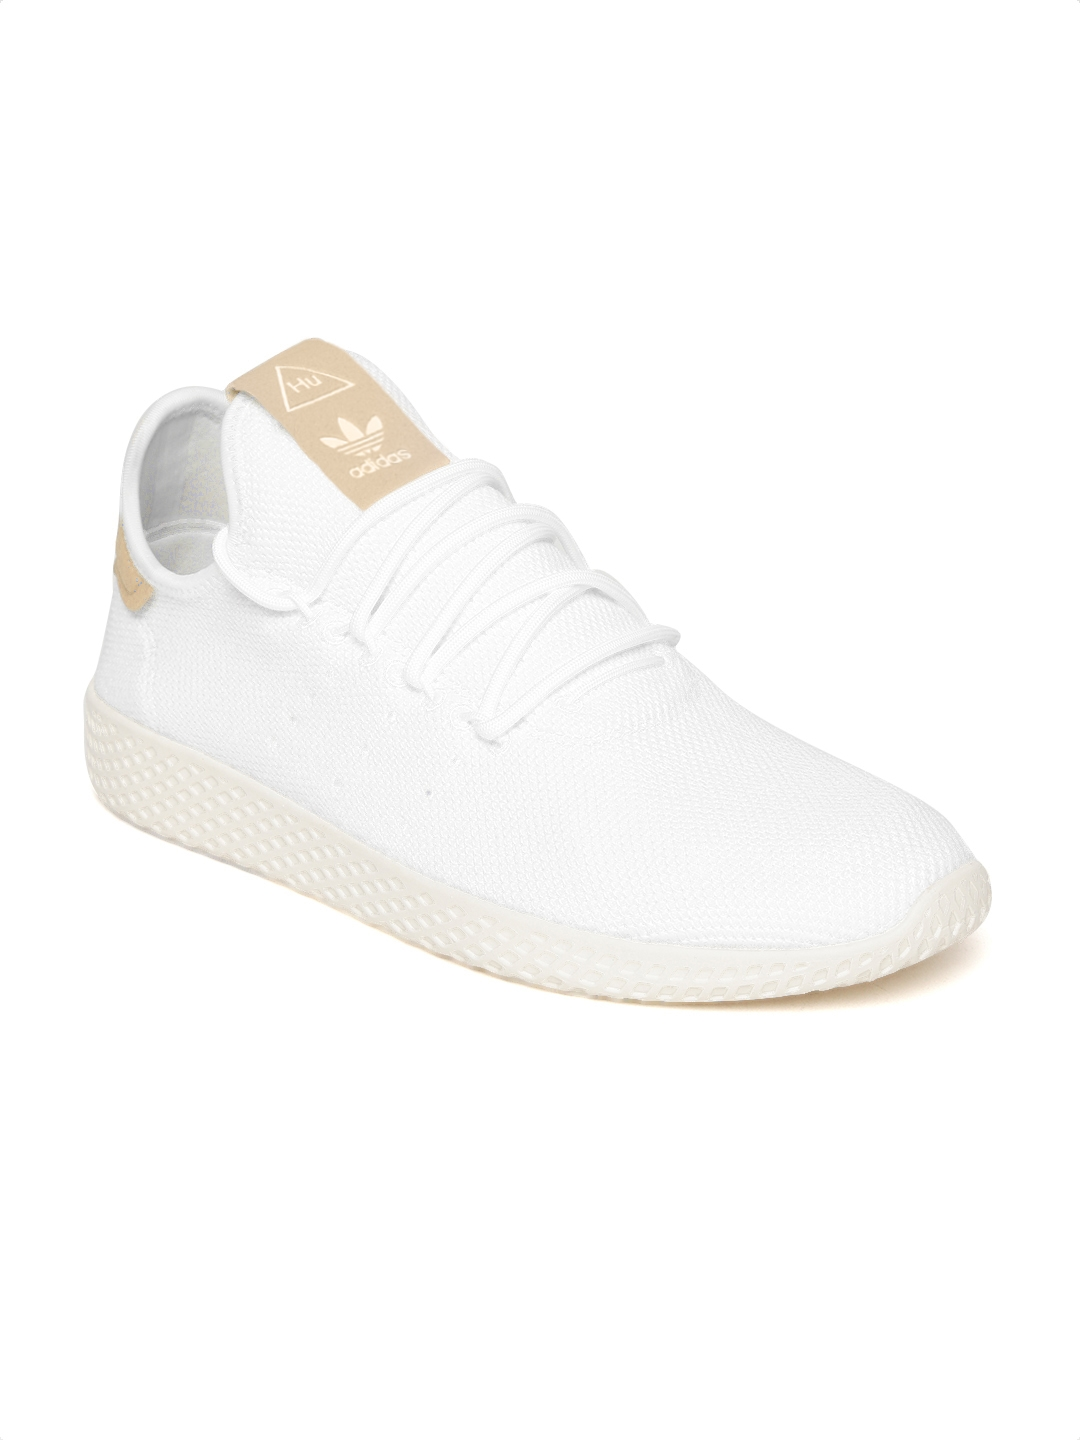 bc0a28e185 Buy ADIDAS Originals Men White PW Tennis HU Woven Design Sneakers ...